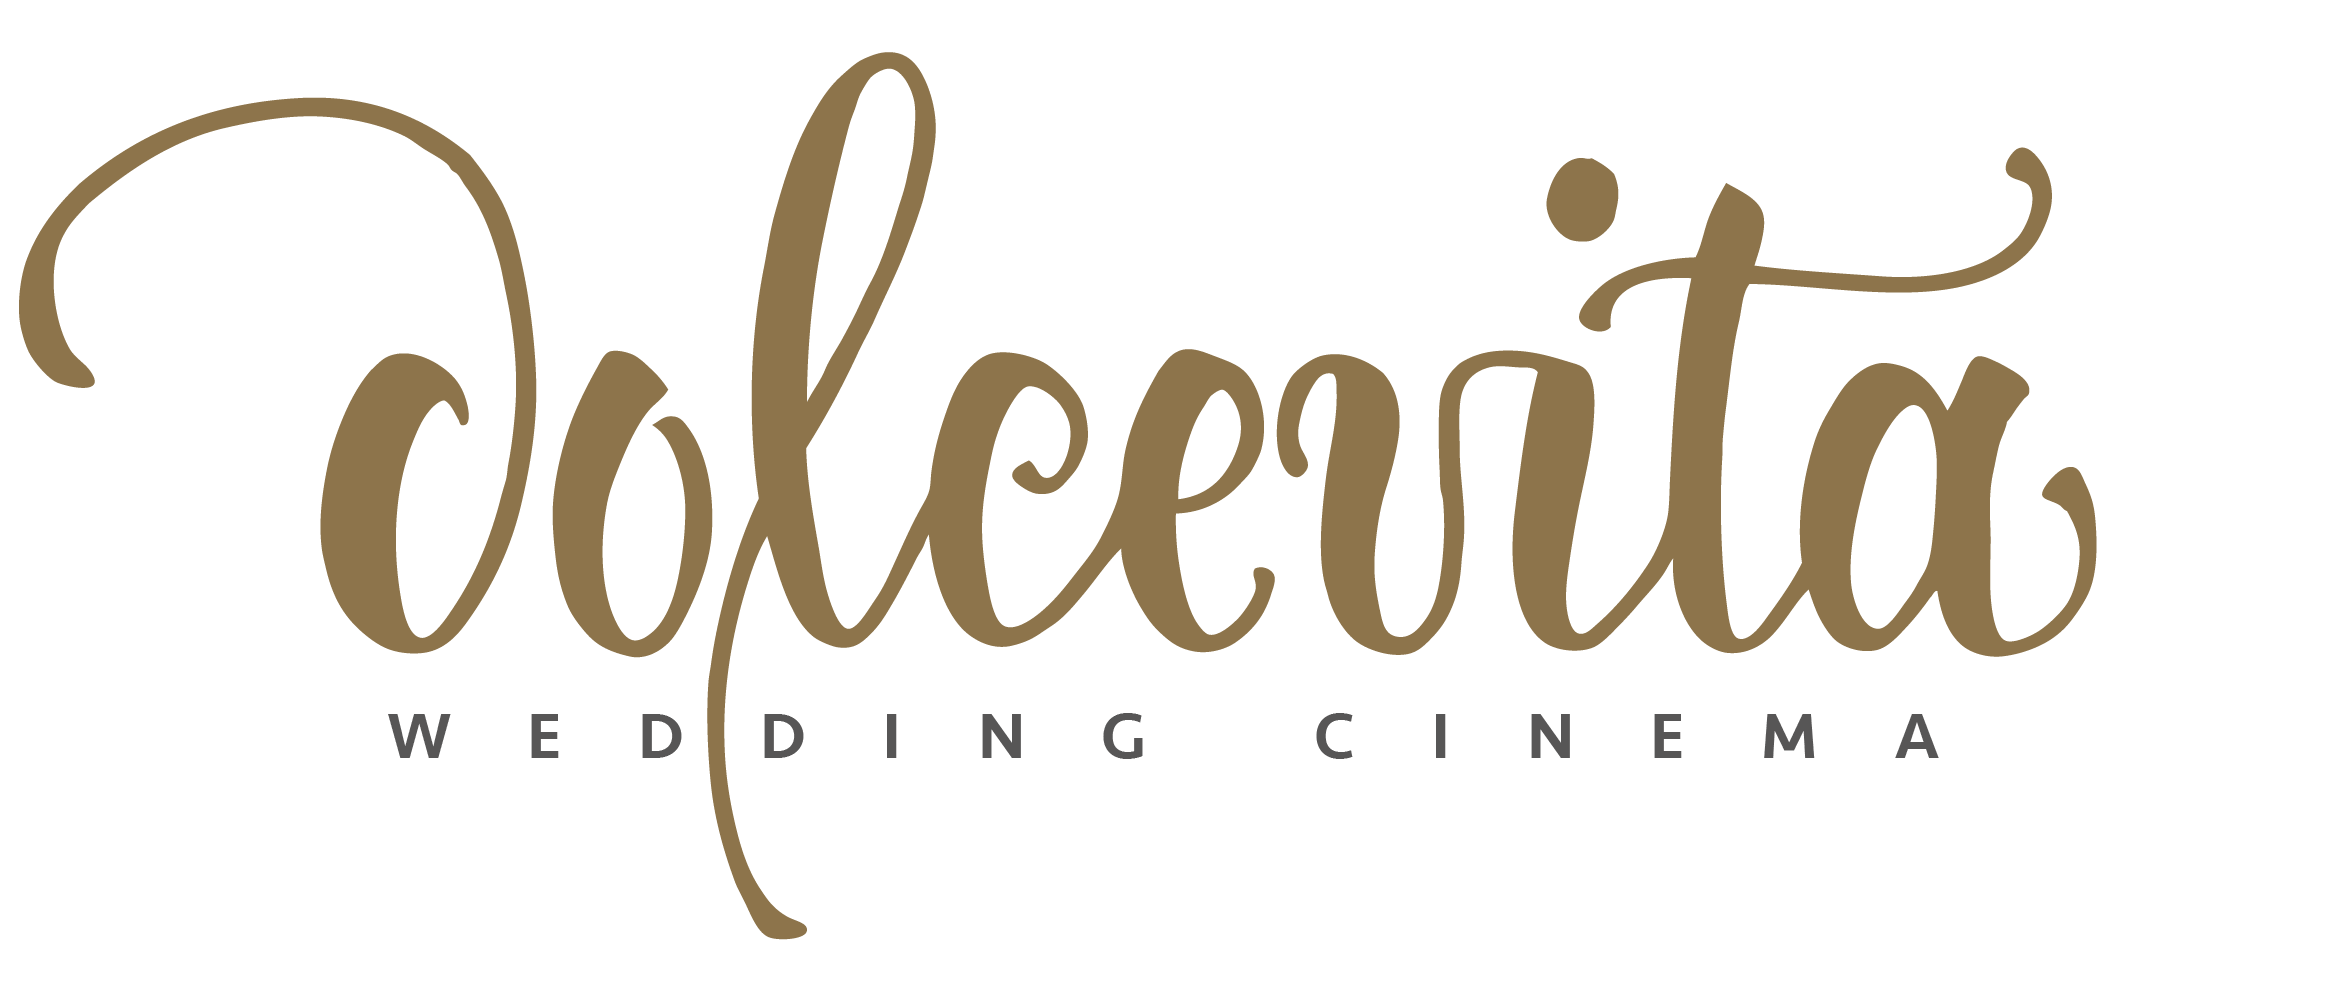 DOLCEVITA Wedding Cinema - Italian Destination Wedding Videographer, Wedding films and videos